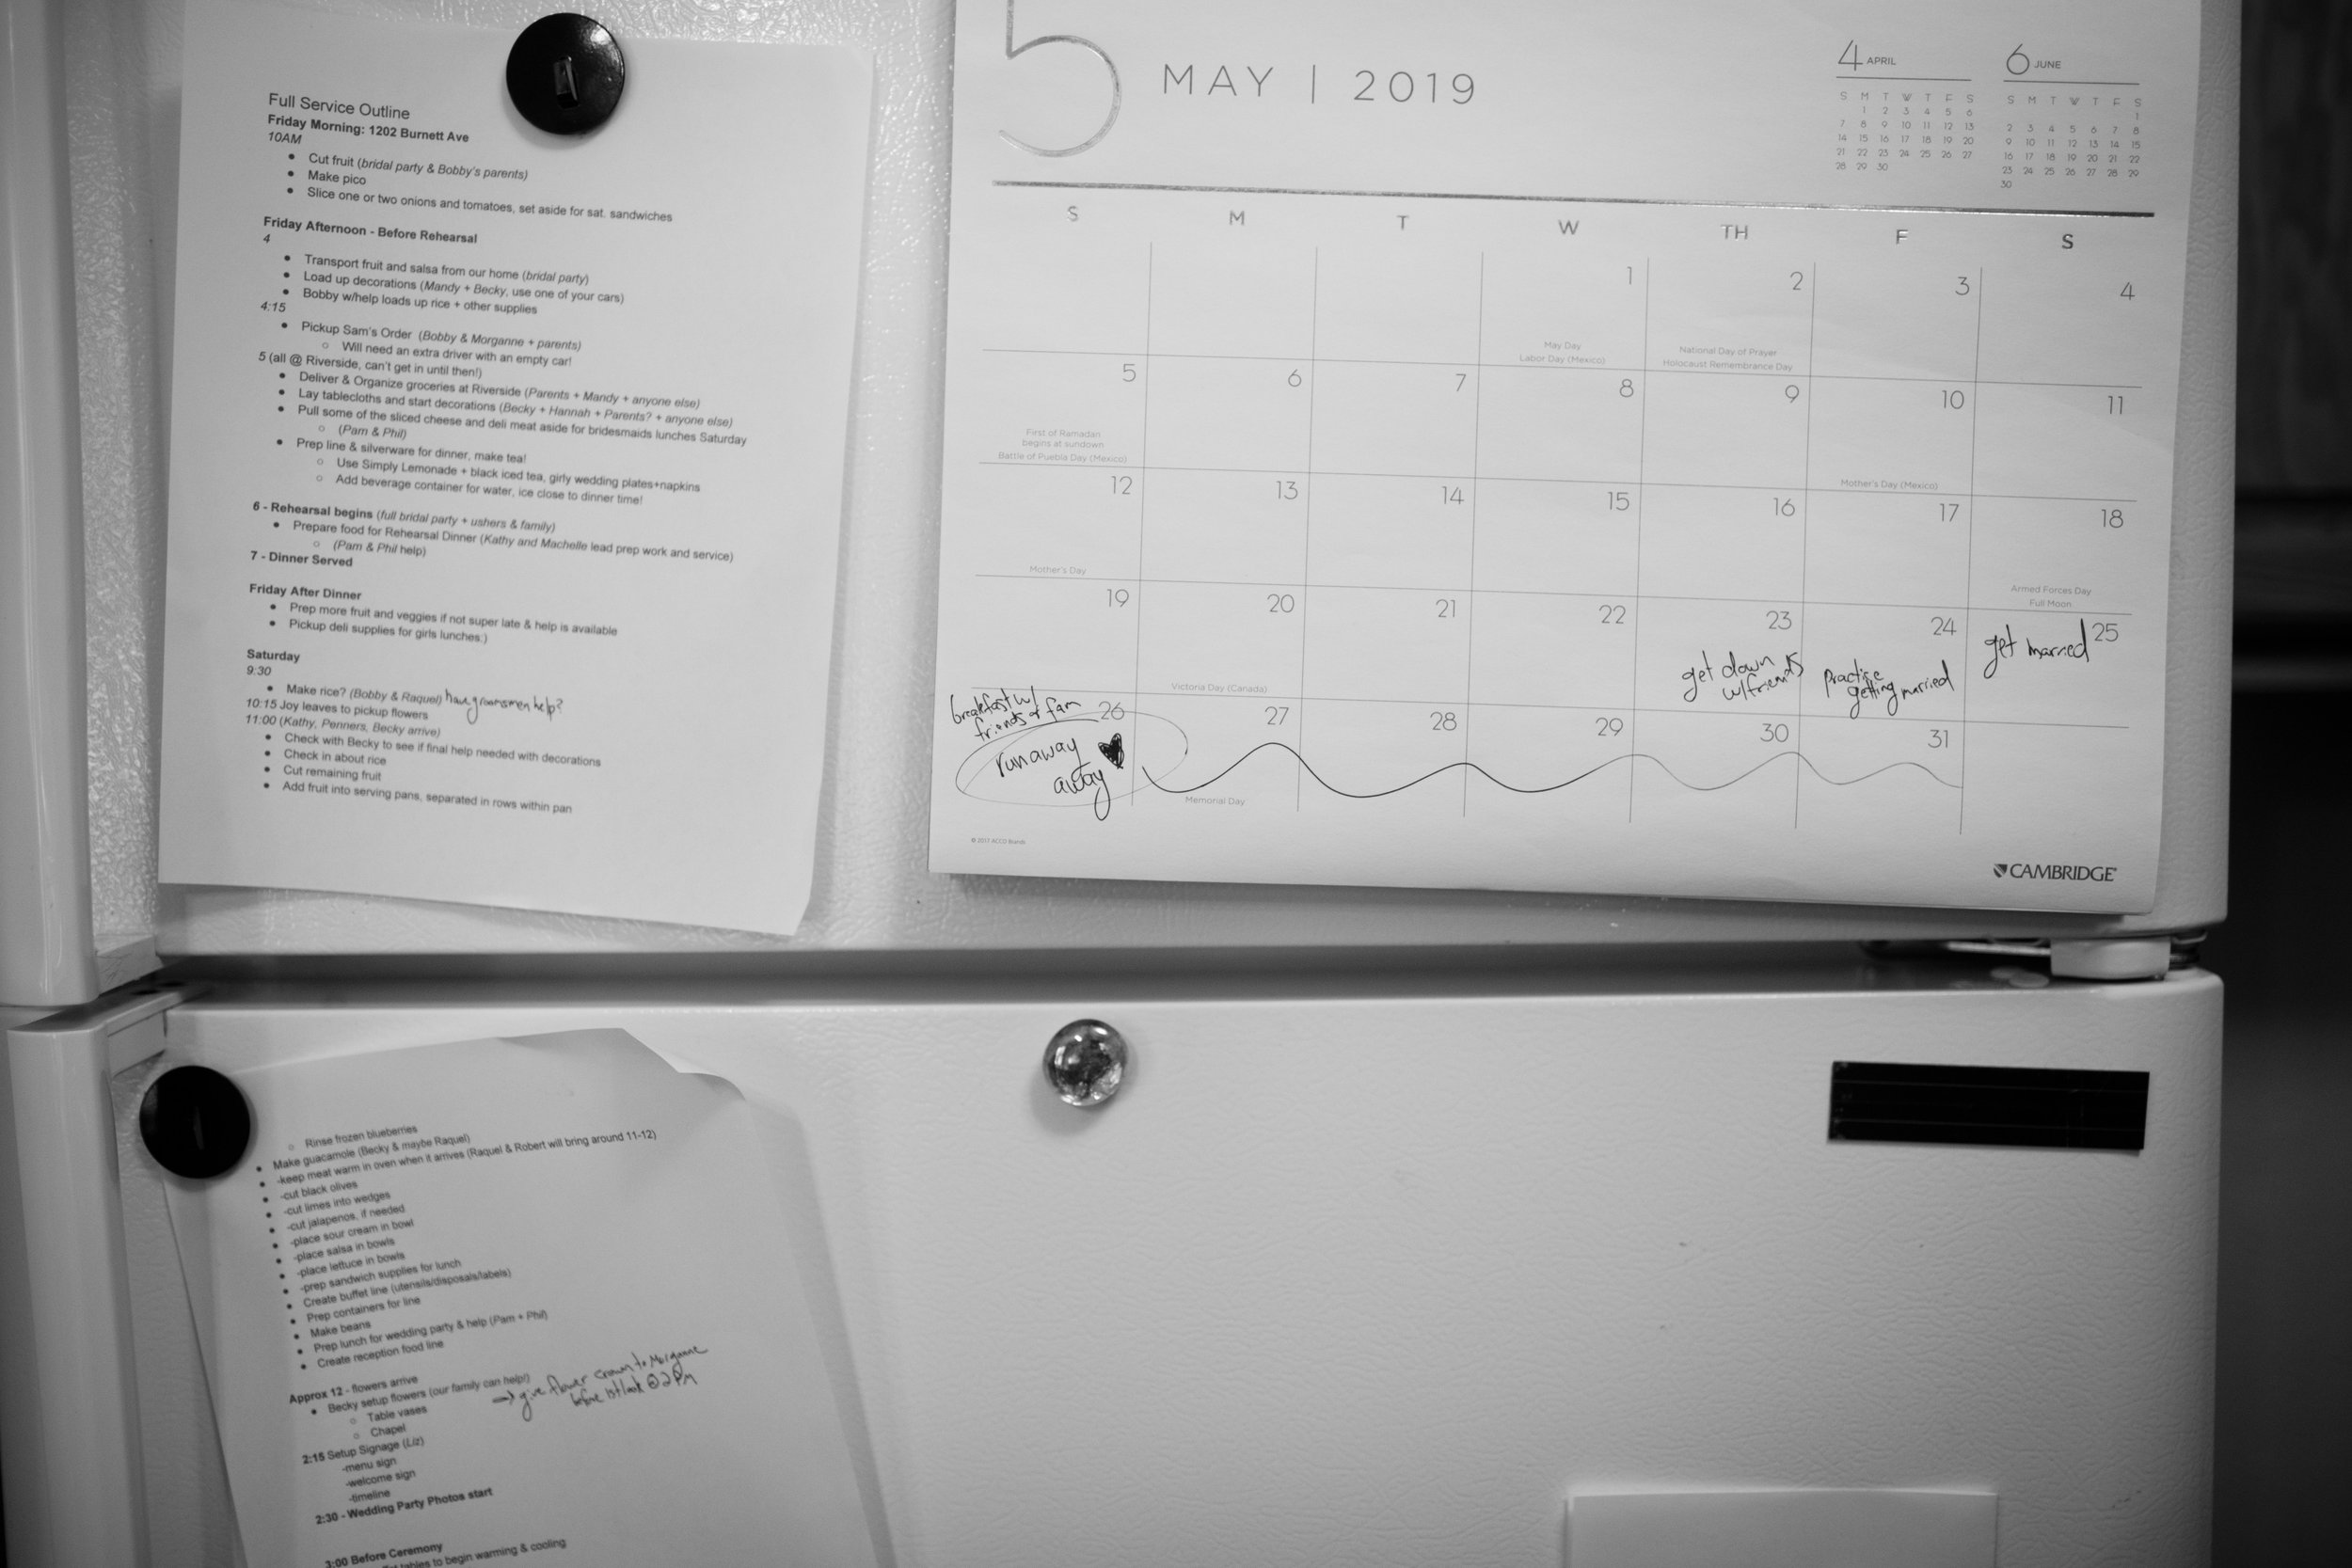 Morganne has the sweetest way with words … zoom in to read her calendar :)